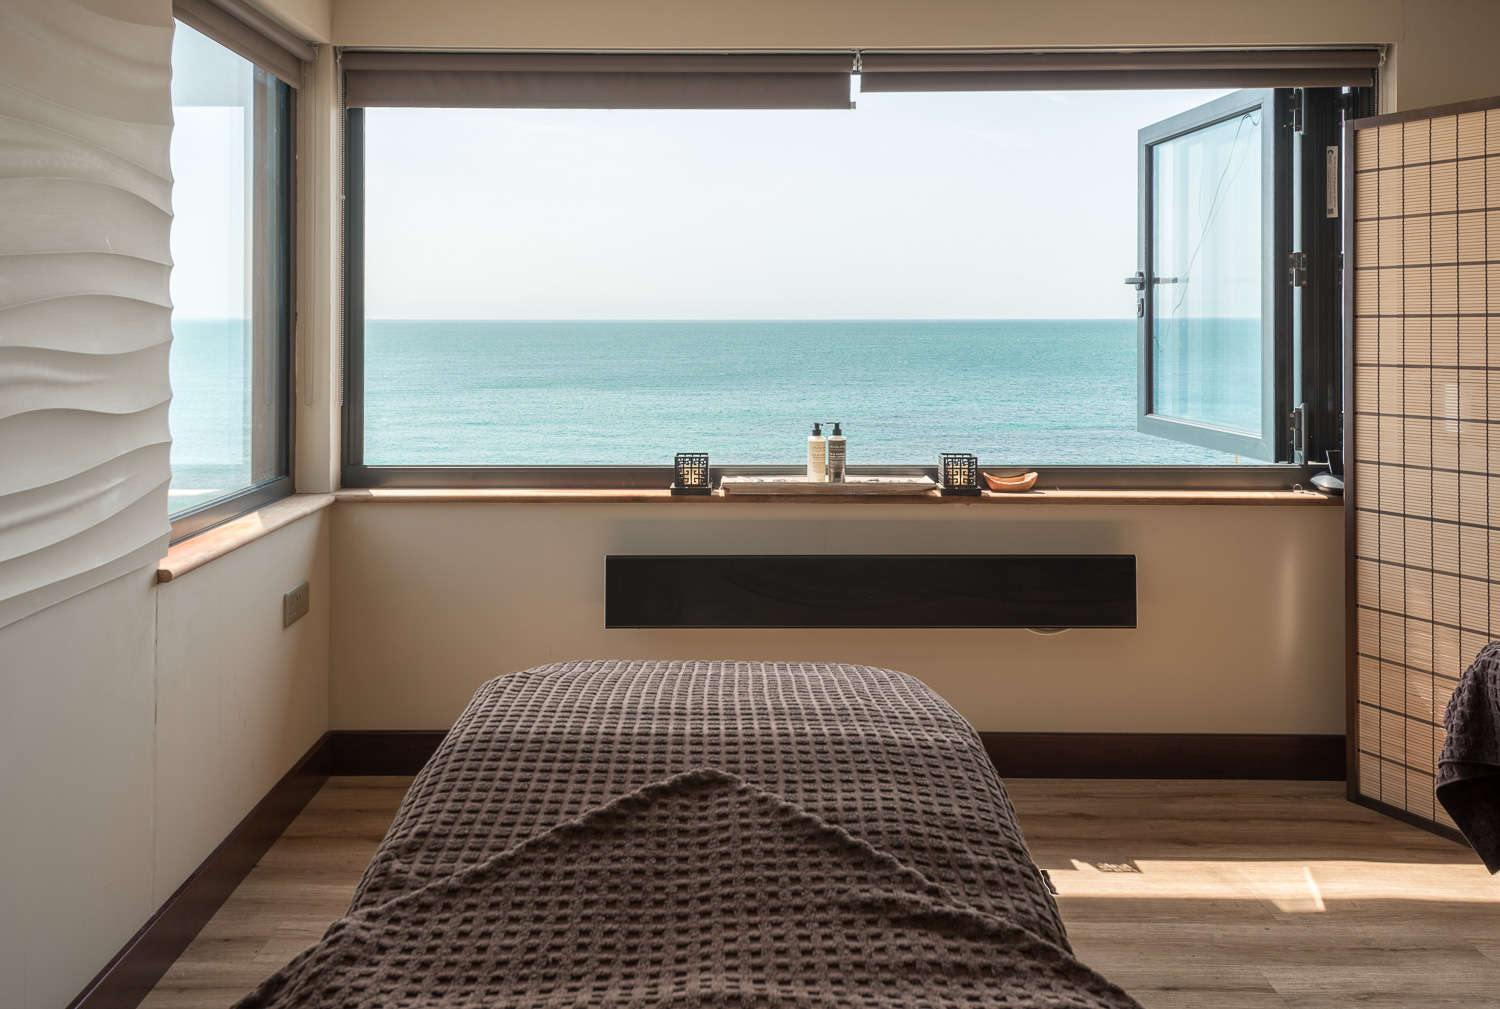 A Treatment Room with a view …